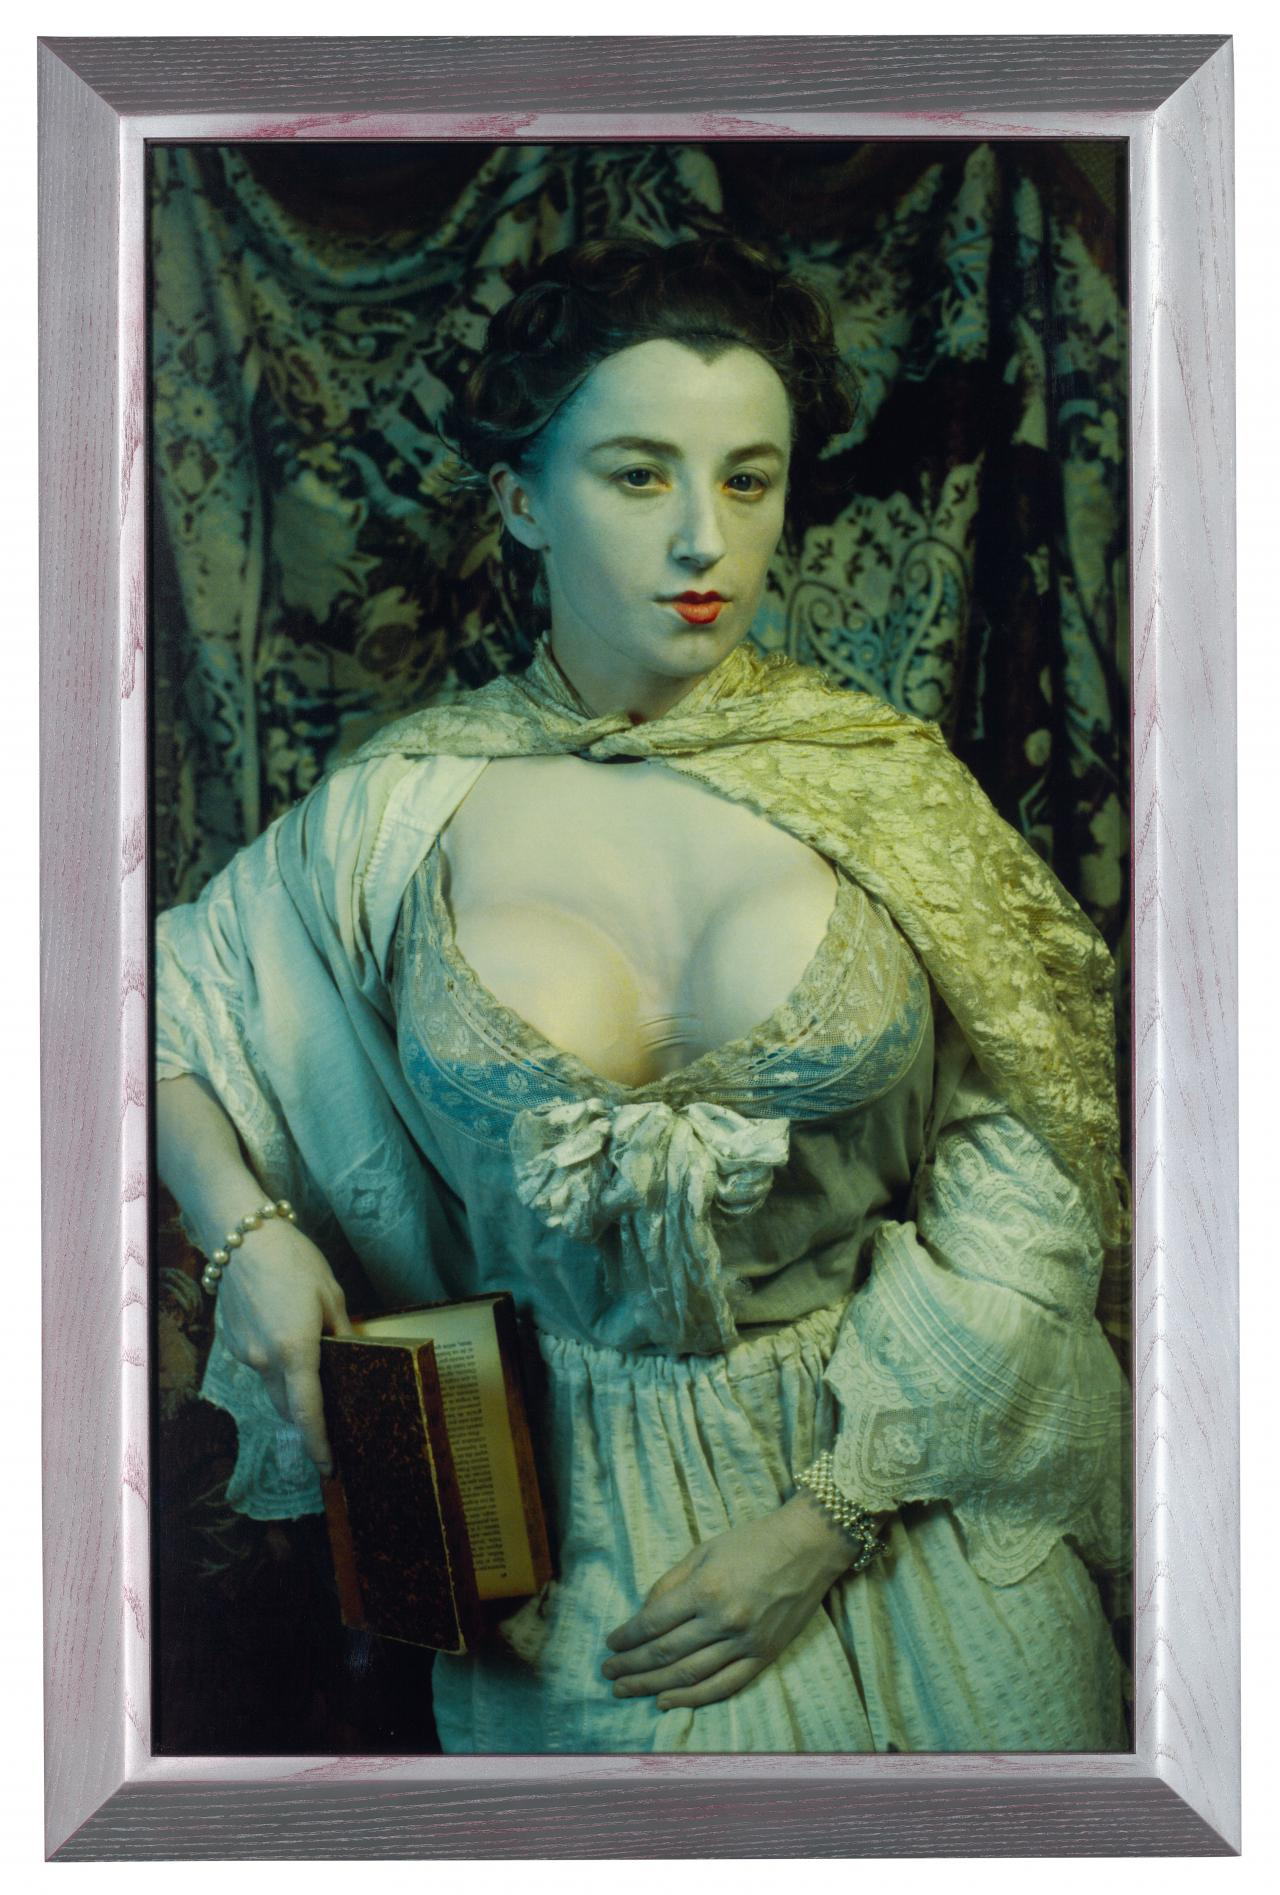 Cindy Sherman Untitled #183-A, 1988-2003 c-print 94.2 by 57.5 cm.  National Gallery of Victoria, Melbourne (acquired with the Felton Bequest in 2004)